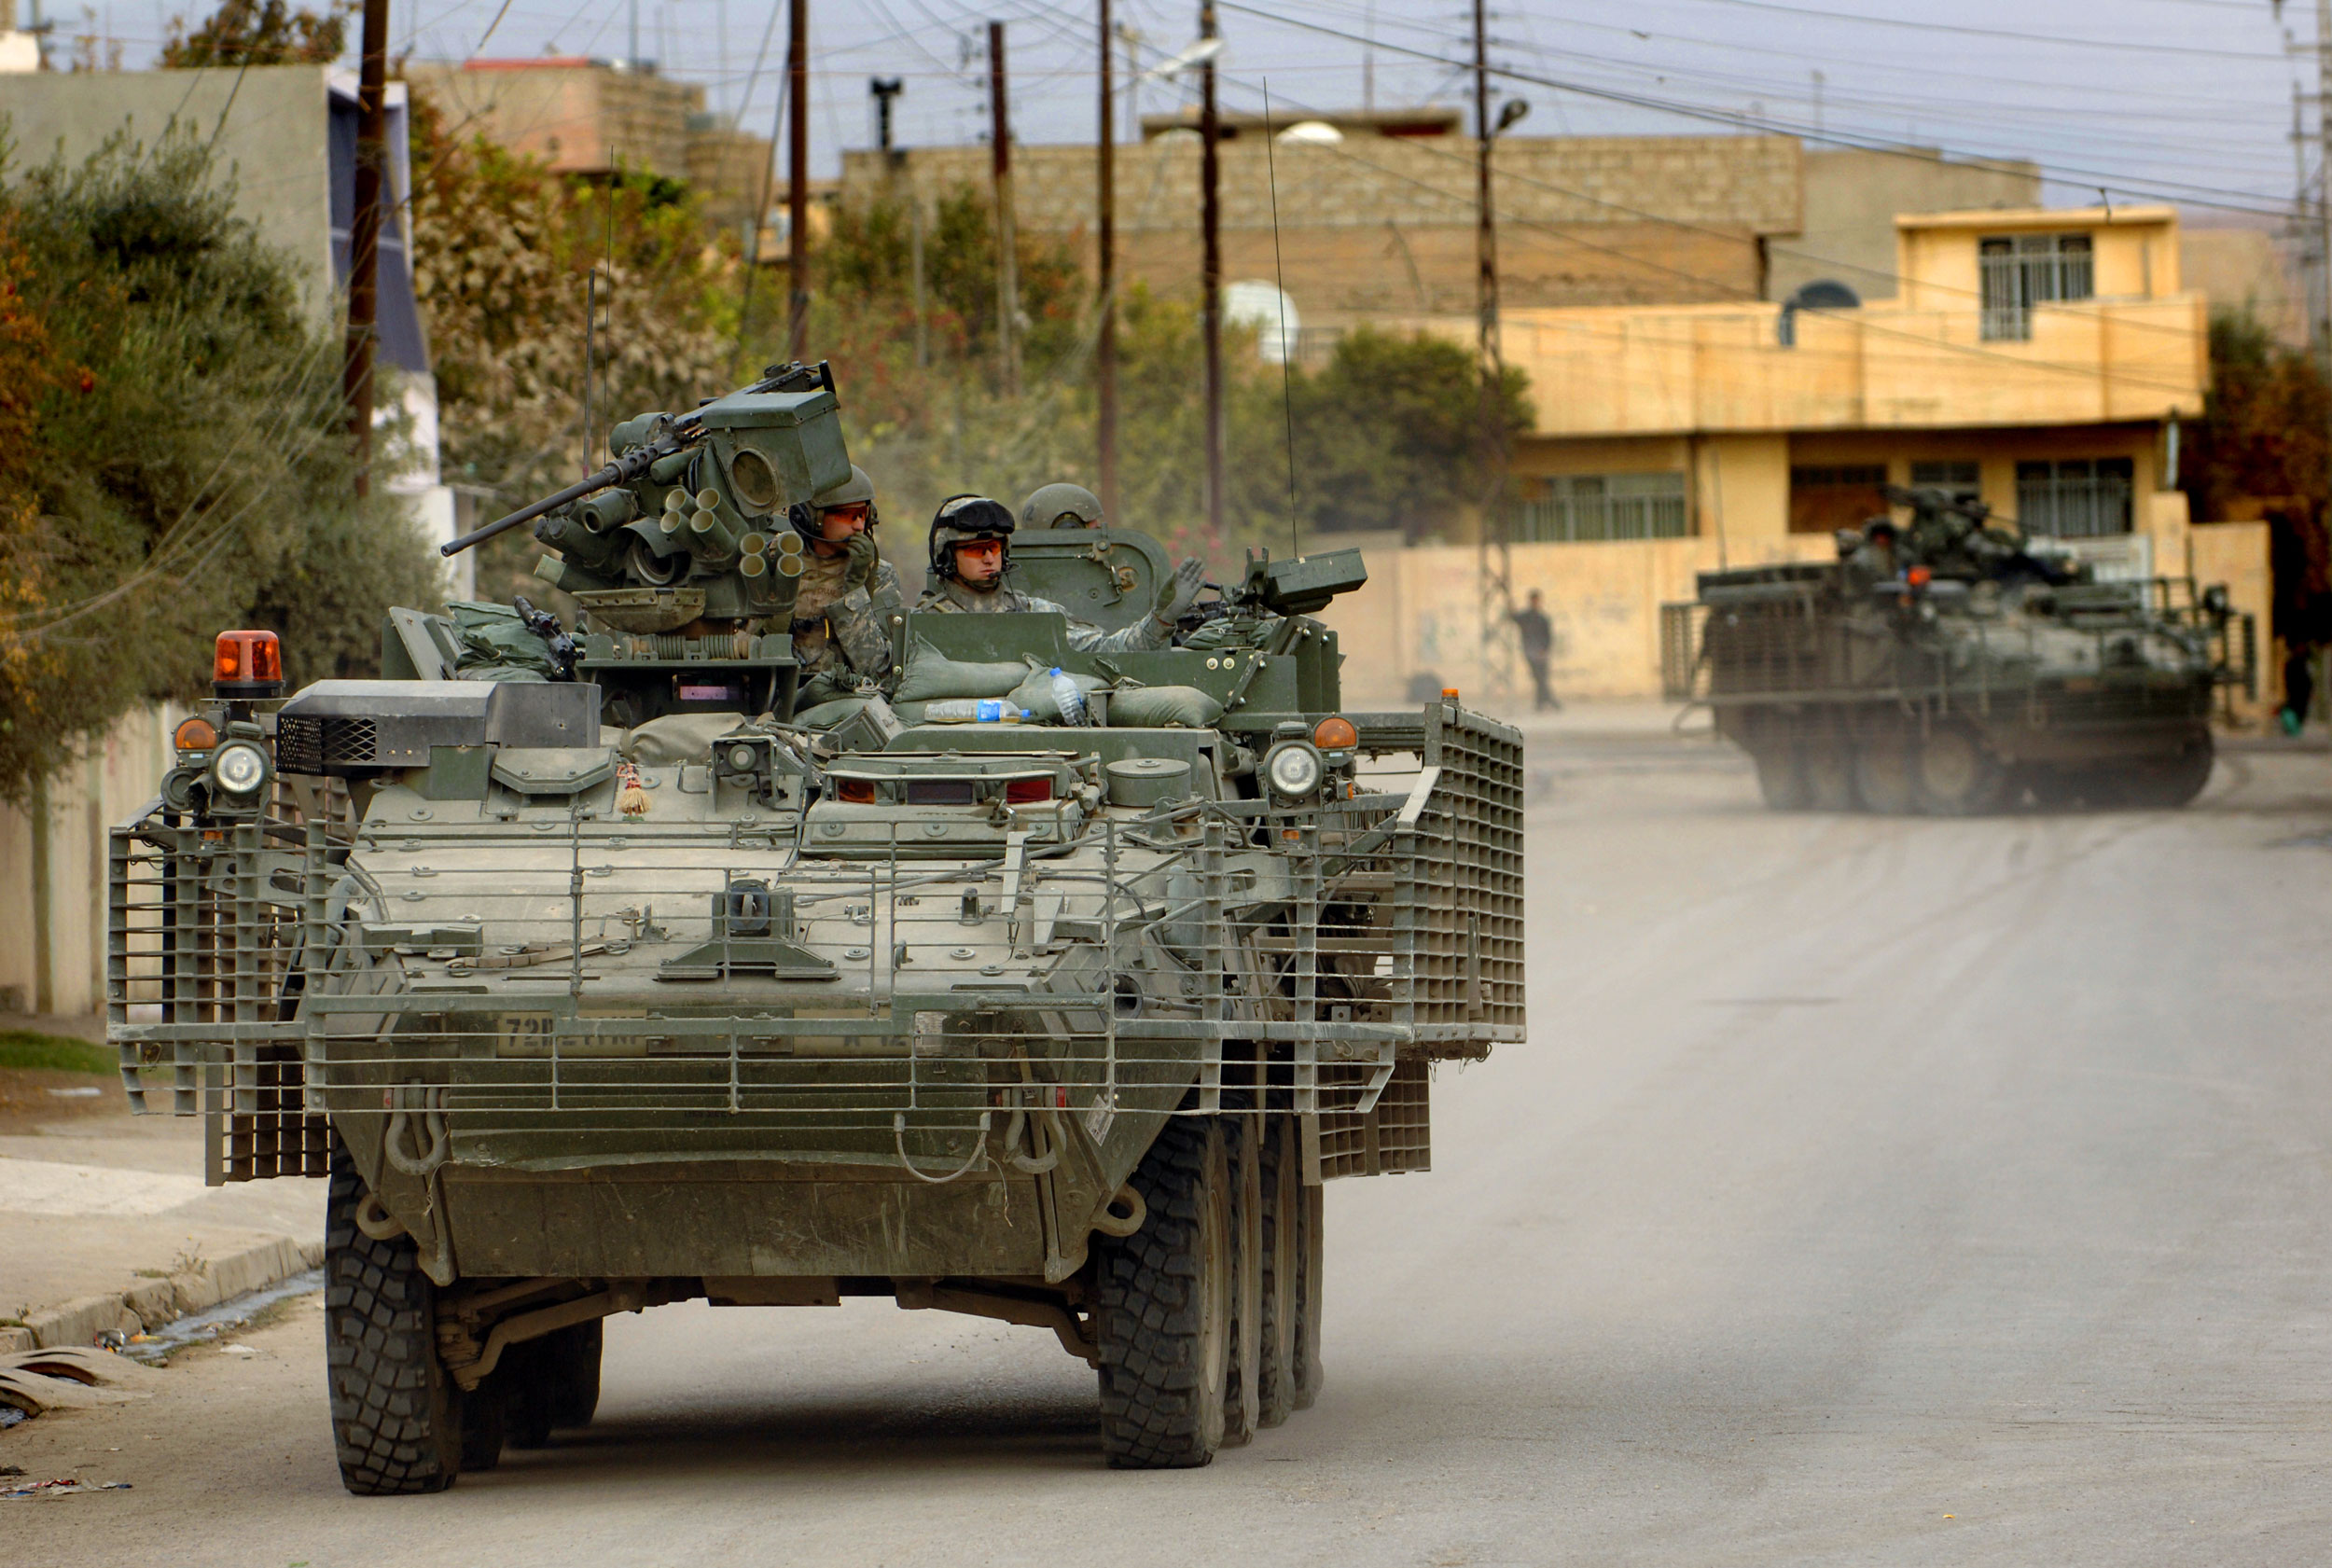 Armored Vehicles For Sale >> File:172nd Stryker Brigade in Mosul.jpg - Wikimedia Commons